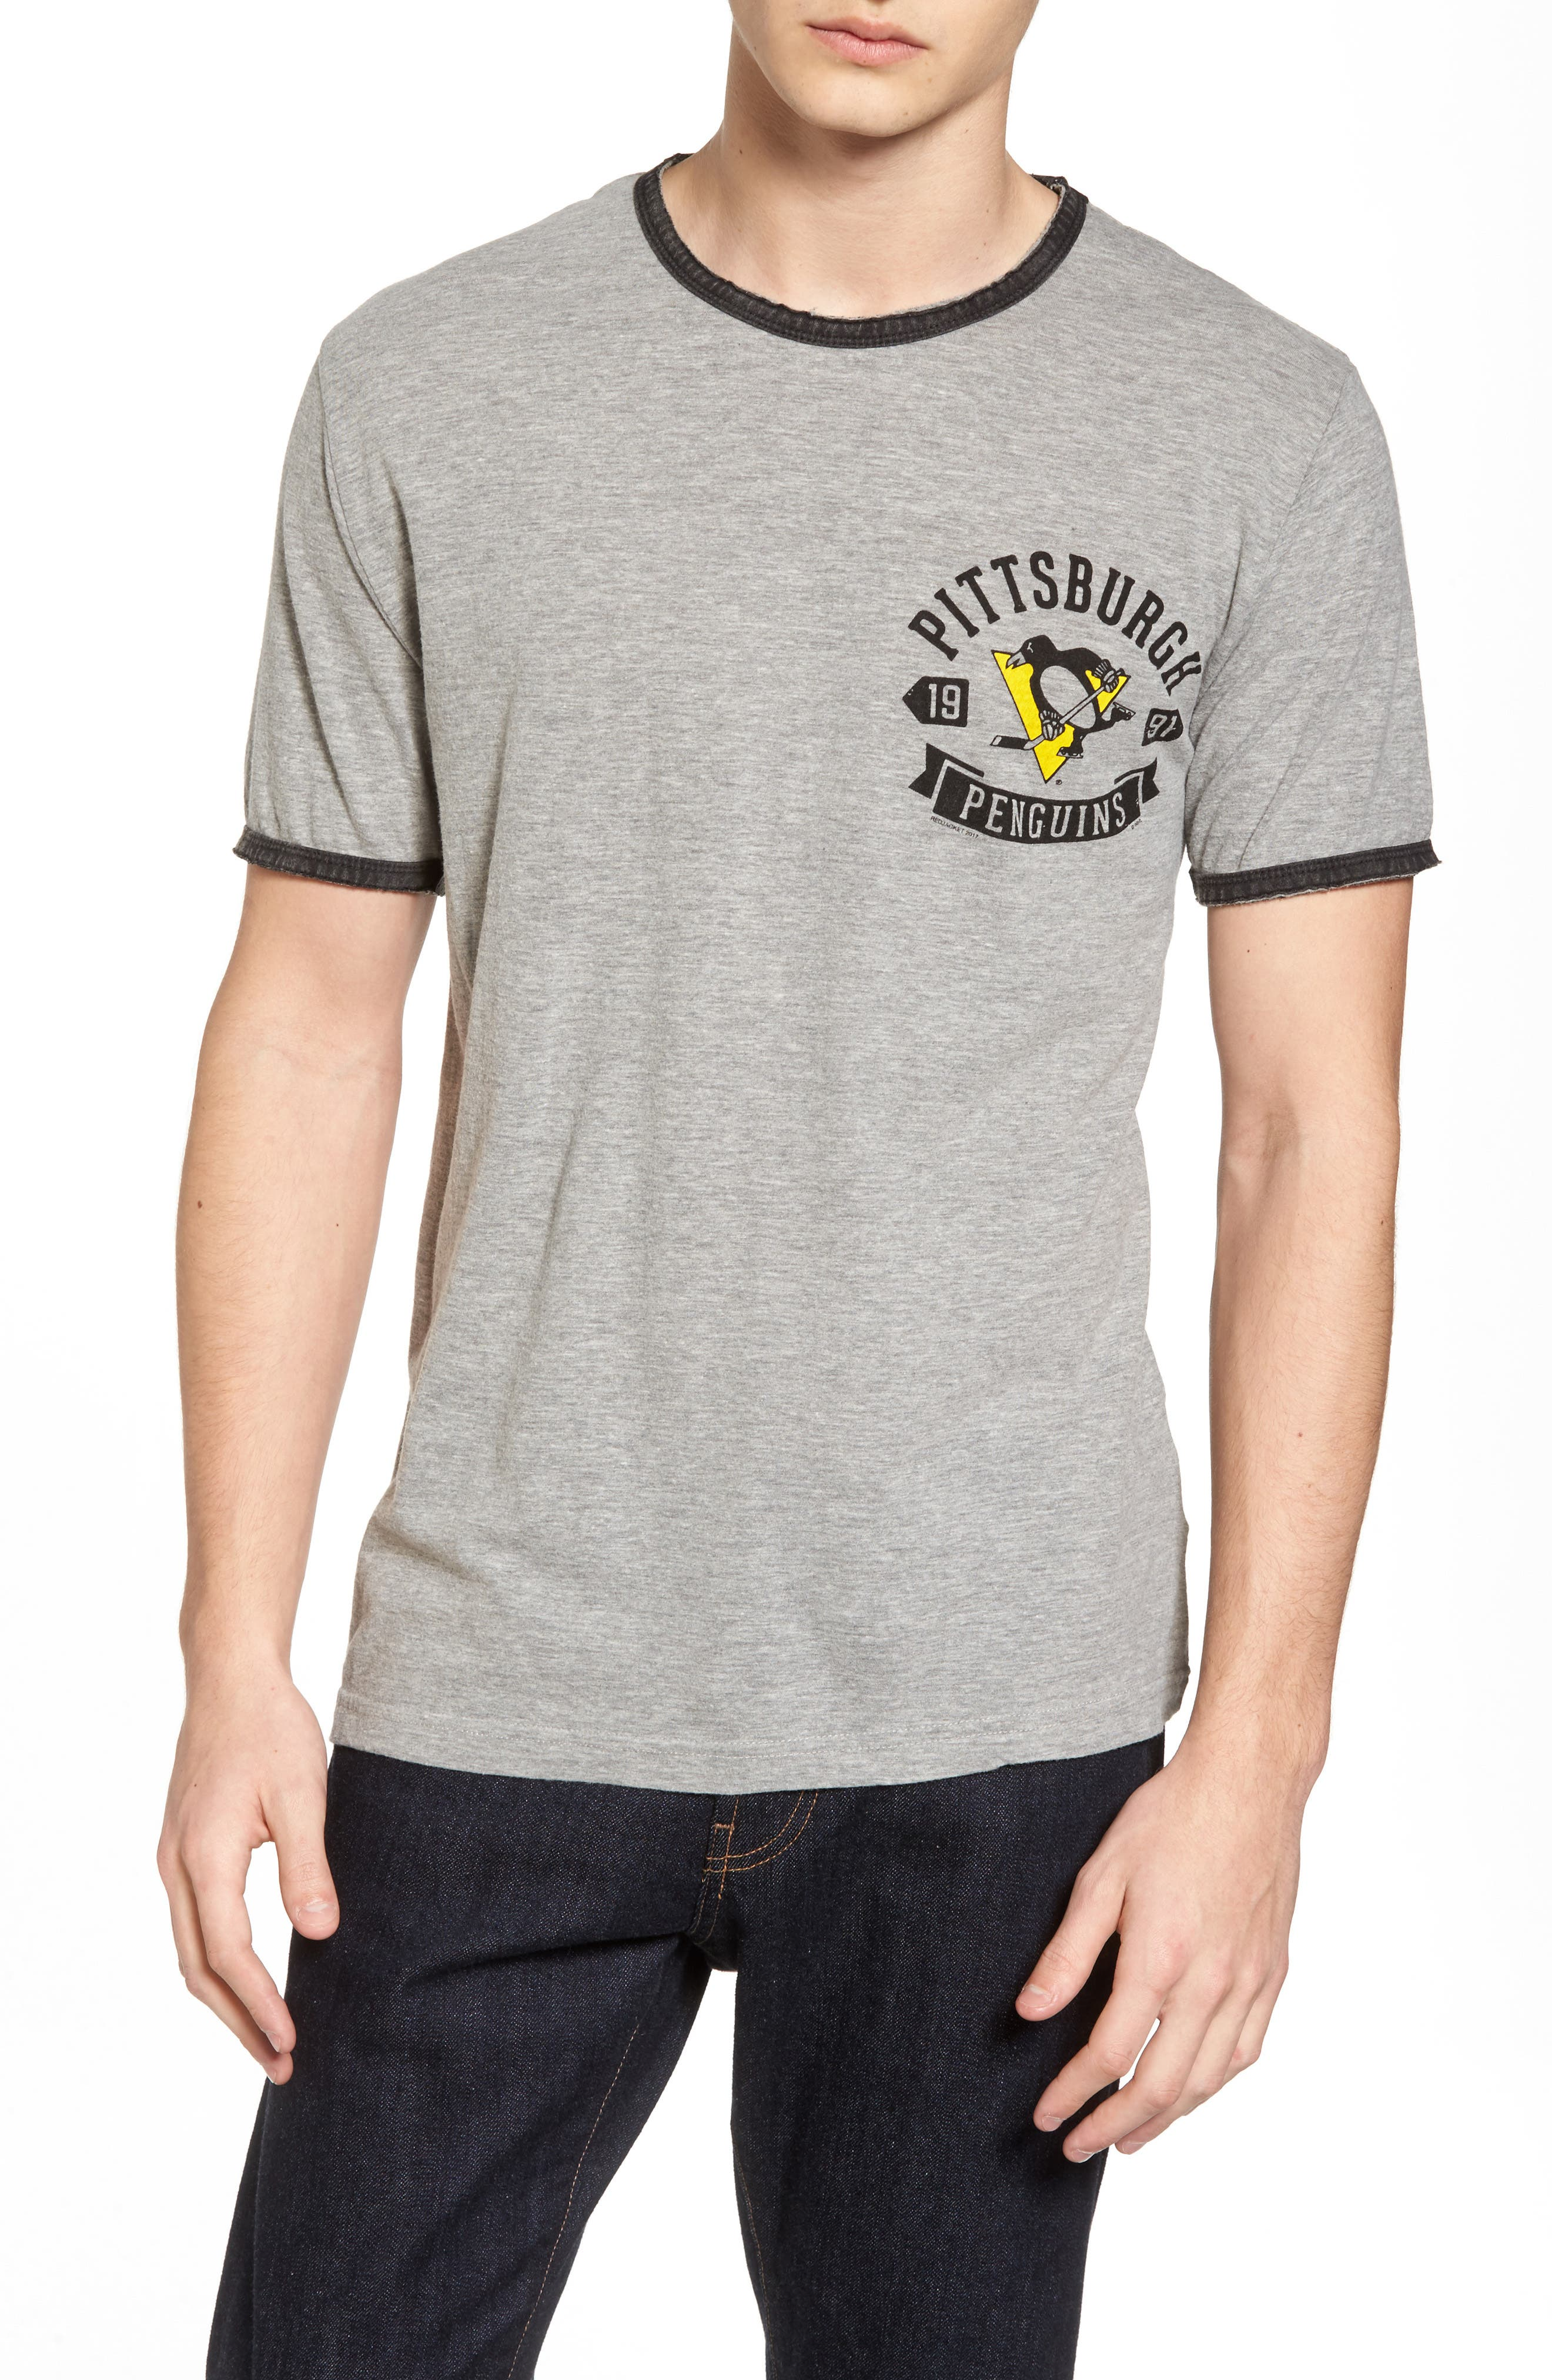 Portage Pittsburgh Penguins Ringer T-Shirt,                         Main,                         color, Heather Grey-Black